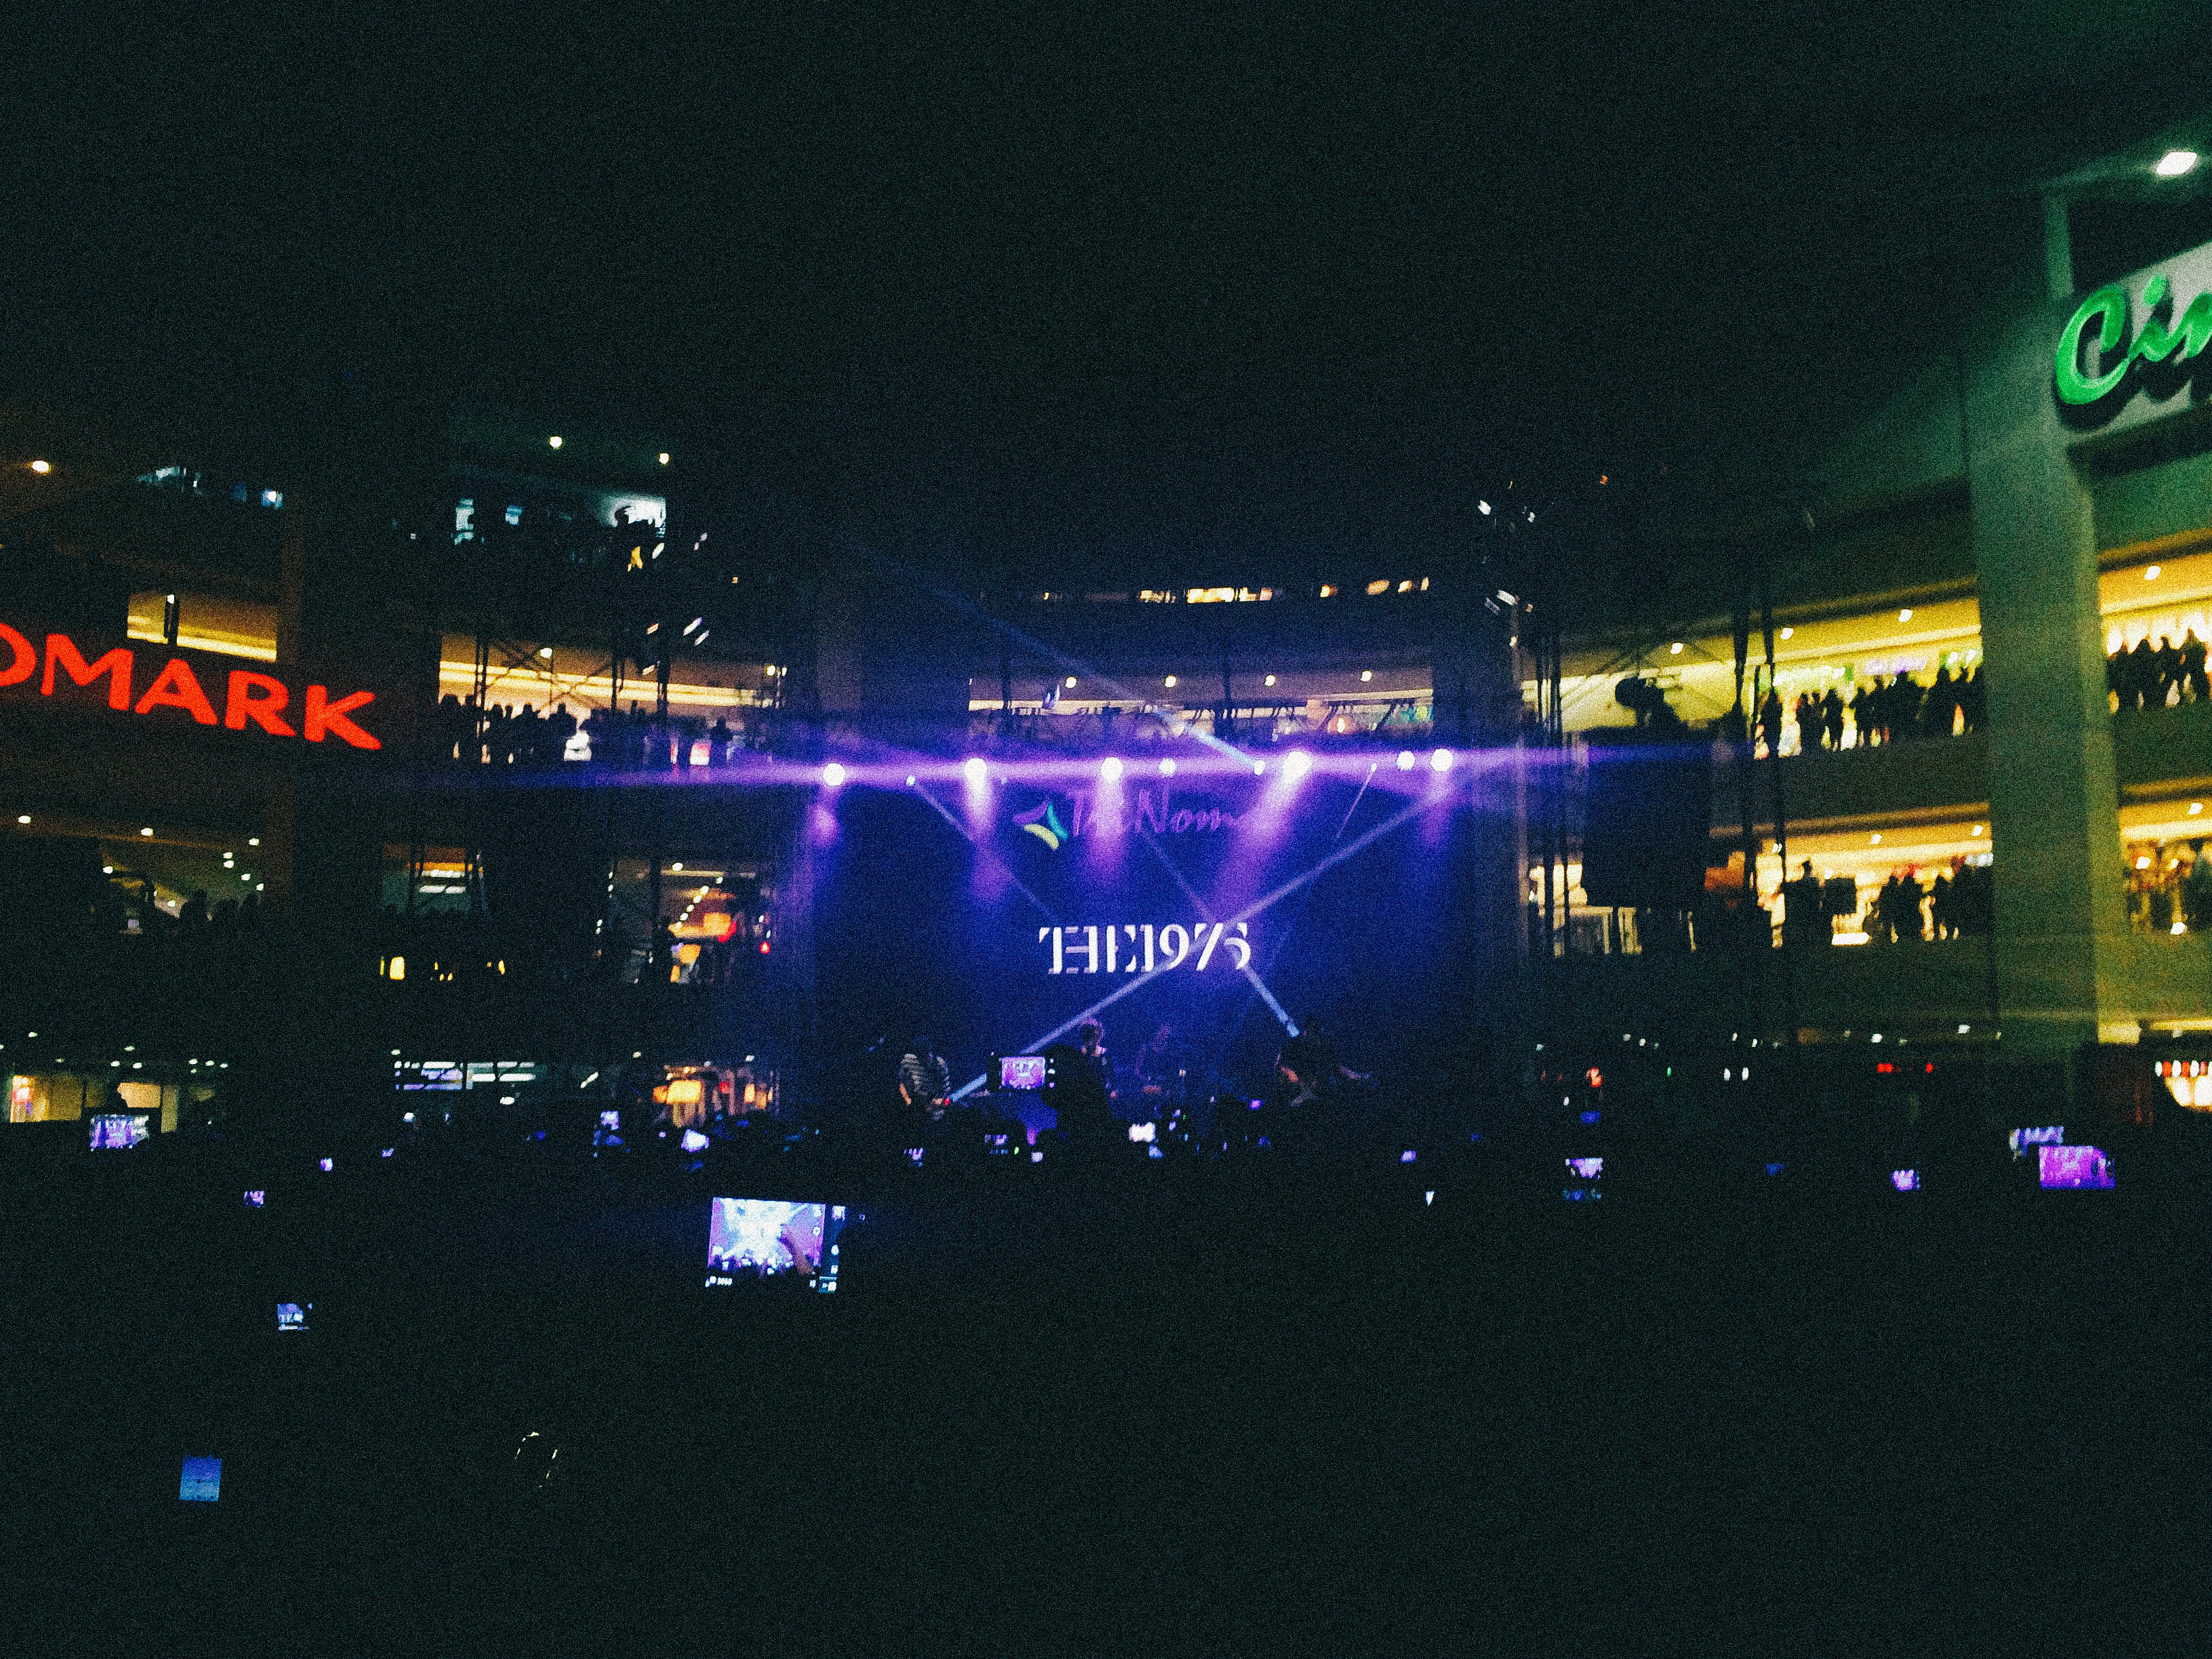 staycation + the 1975